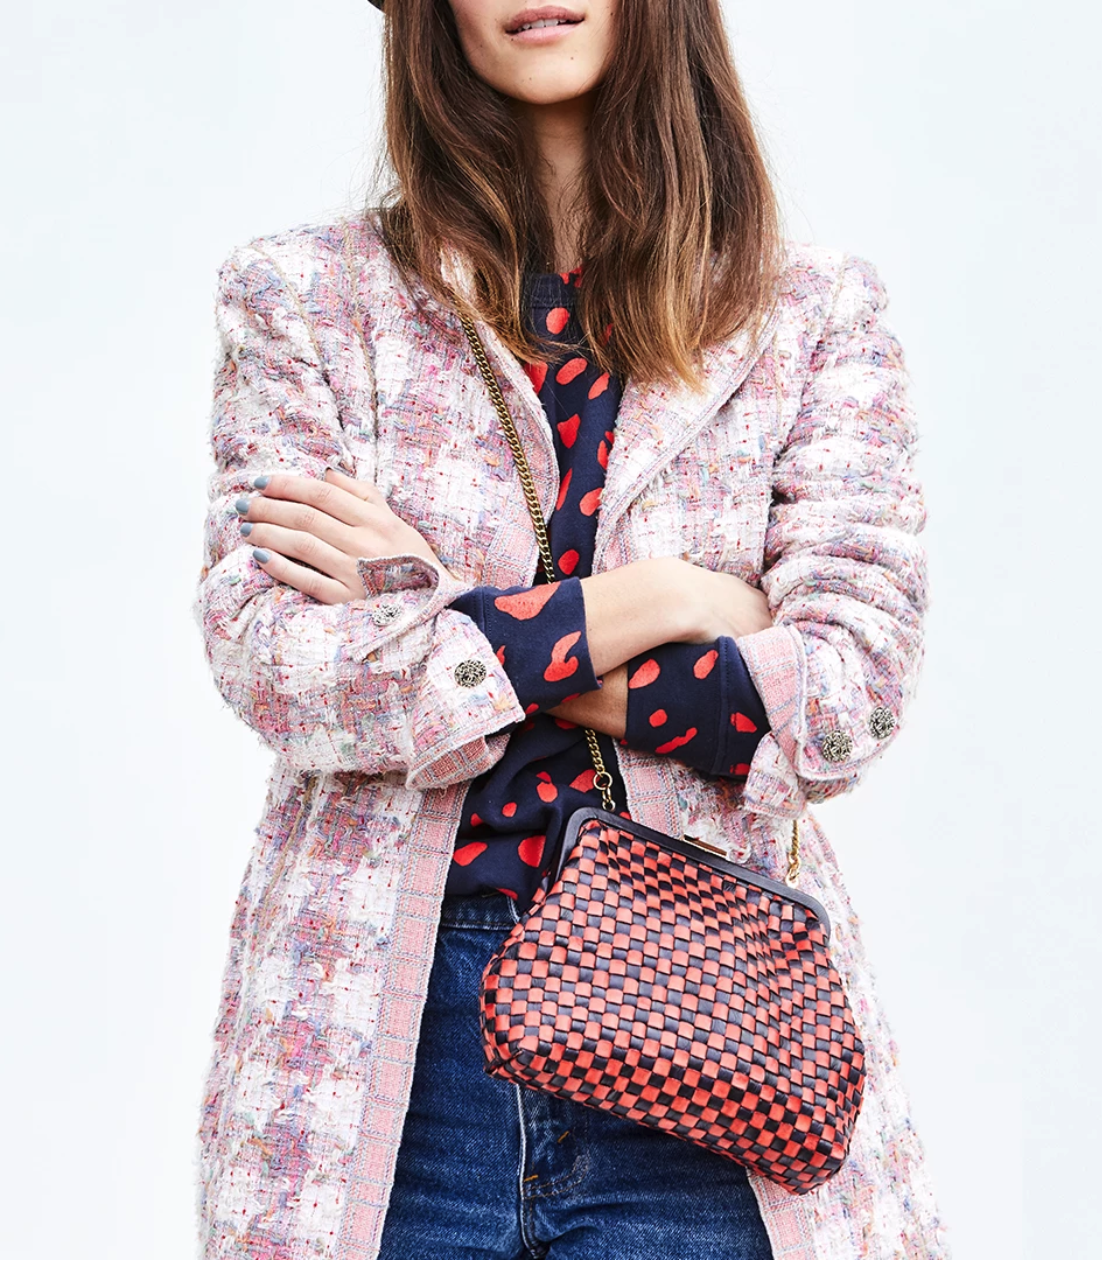 Clare V - The Flore bag in Navy and Red Checker is fun and affordable!